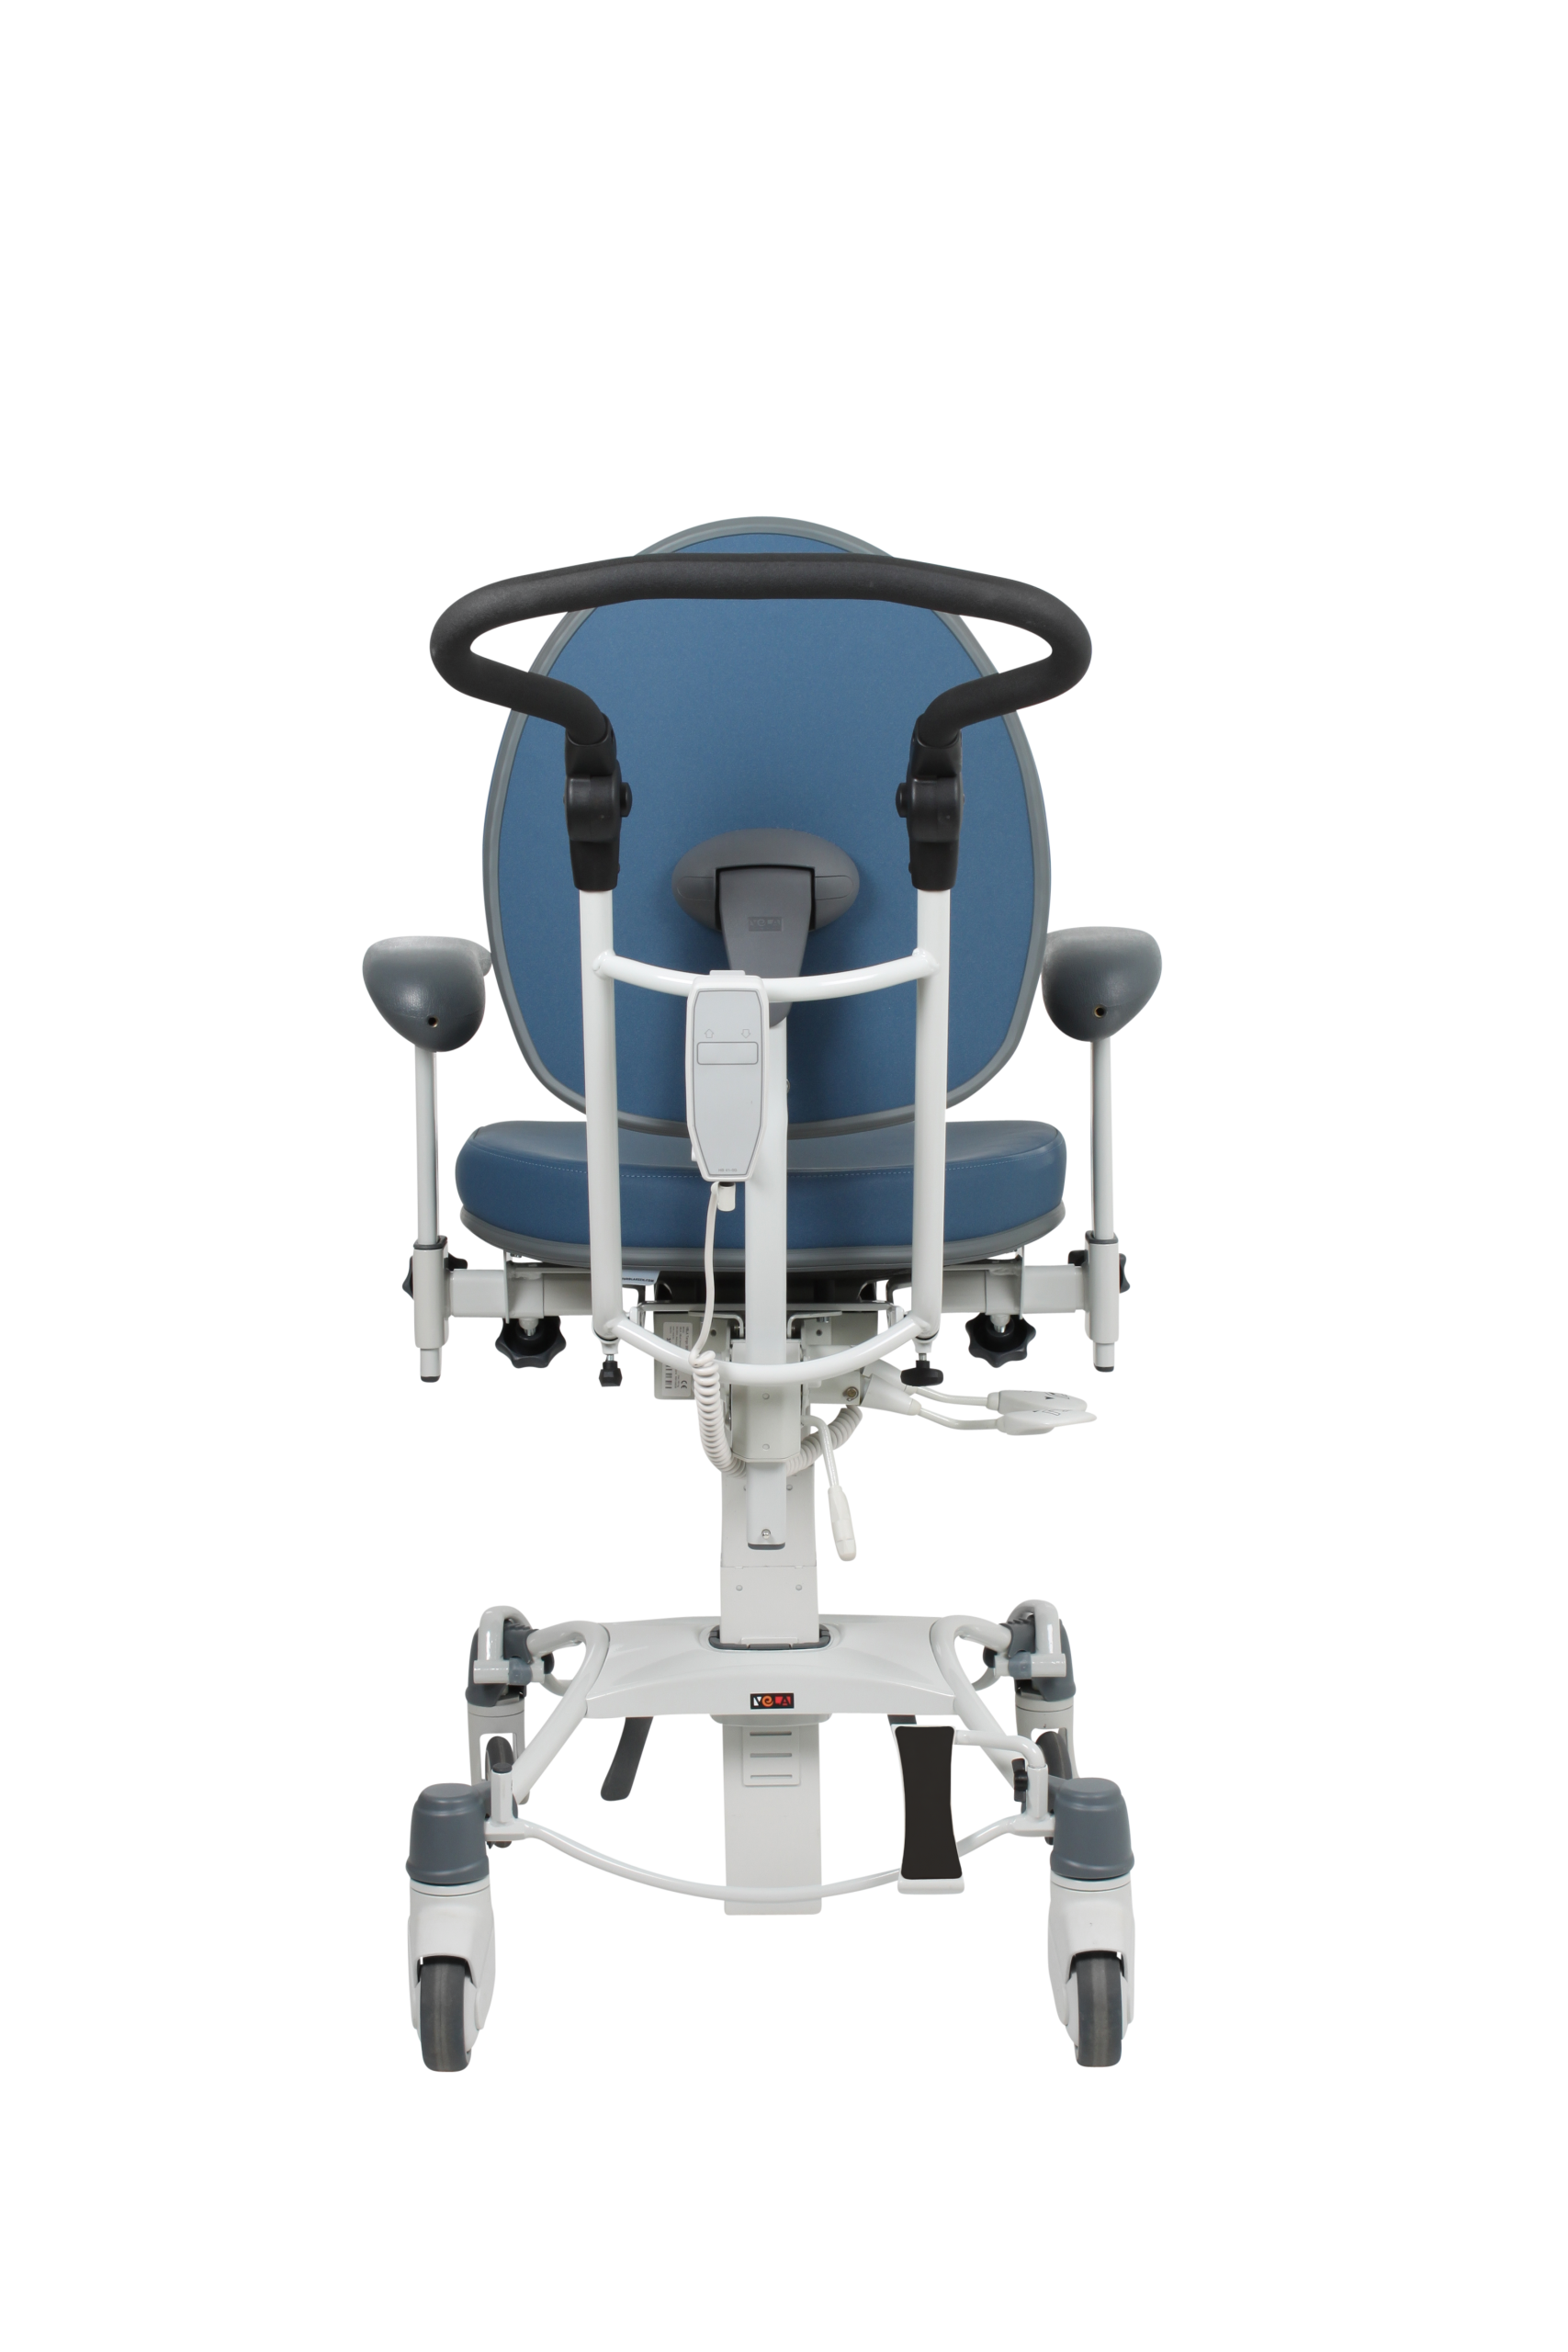 https://www.lameris-group.nl/wp-content/uploads/2020/03/VELA-Move-Ophtalmology-chair-back-edit-scaled.png